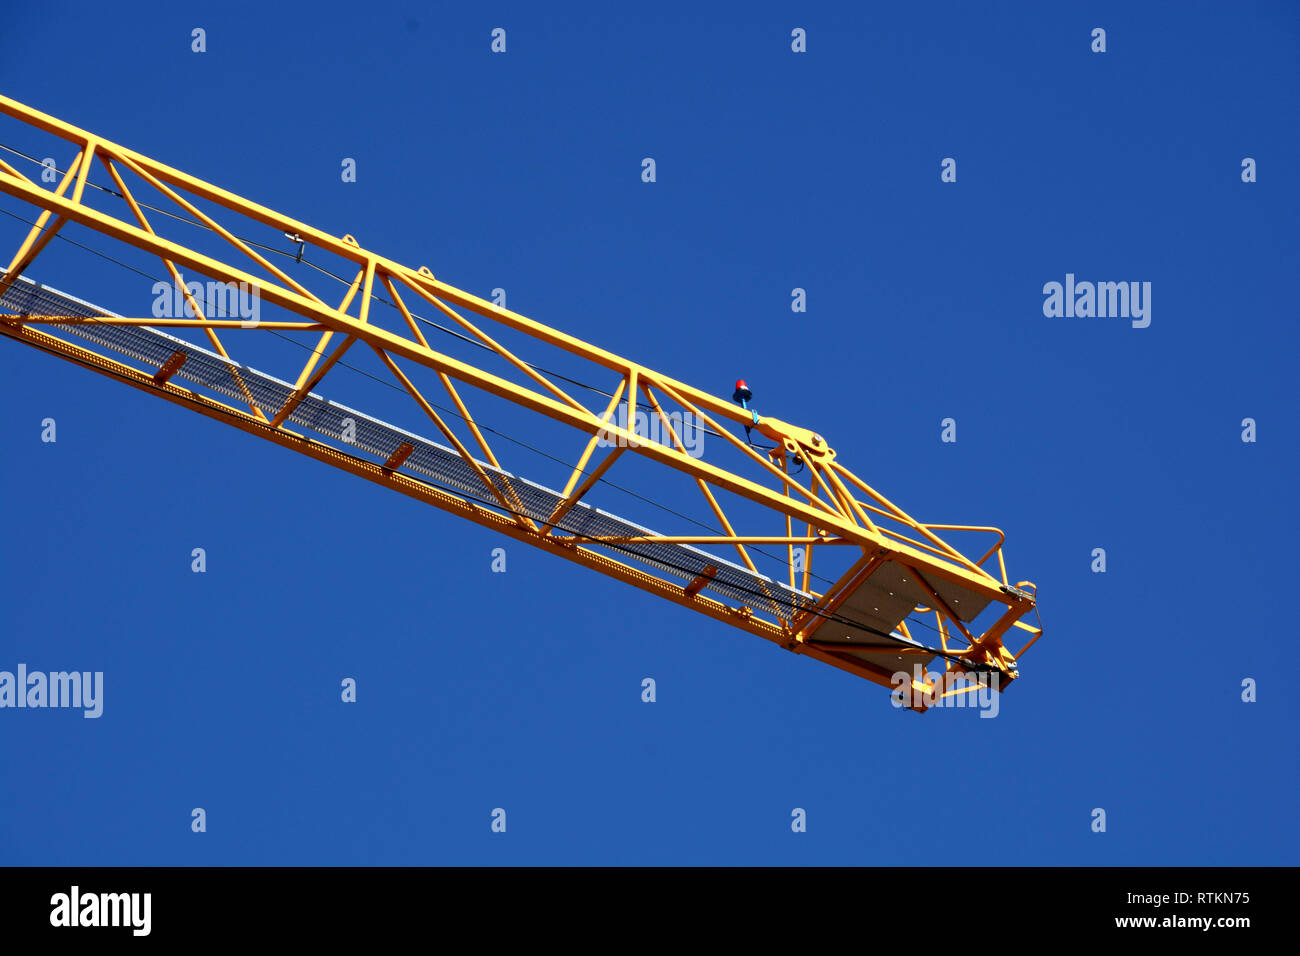 Tower crane lights